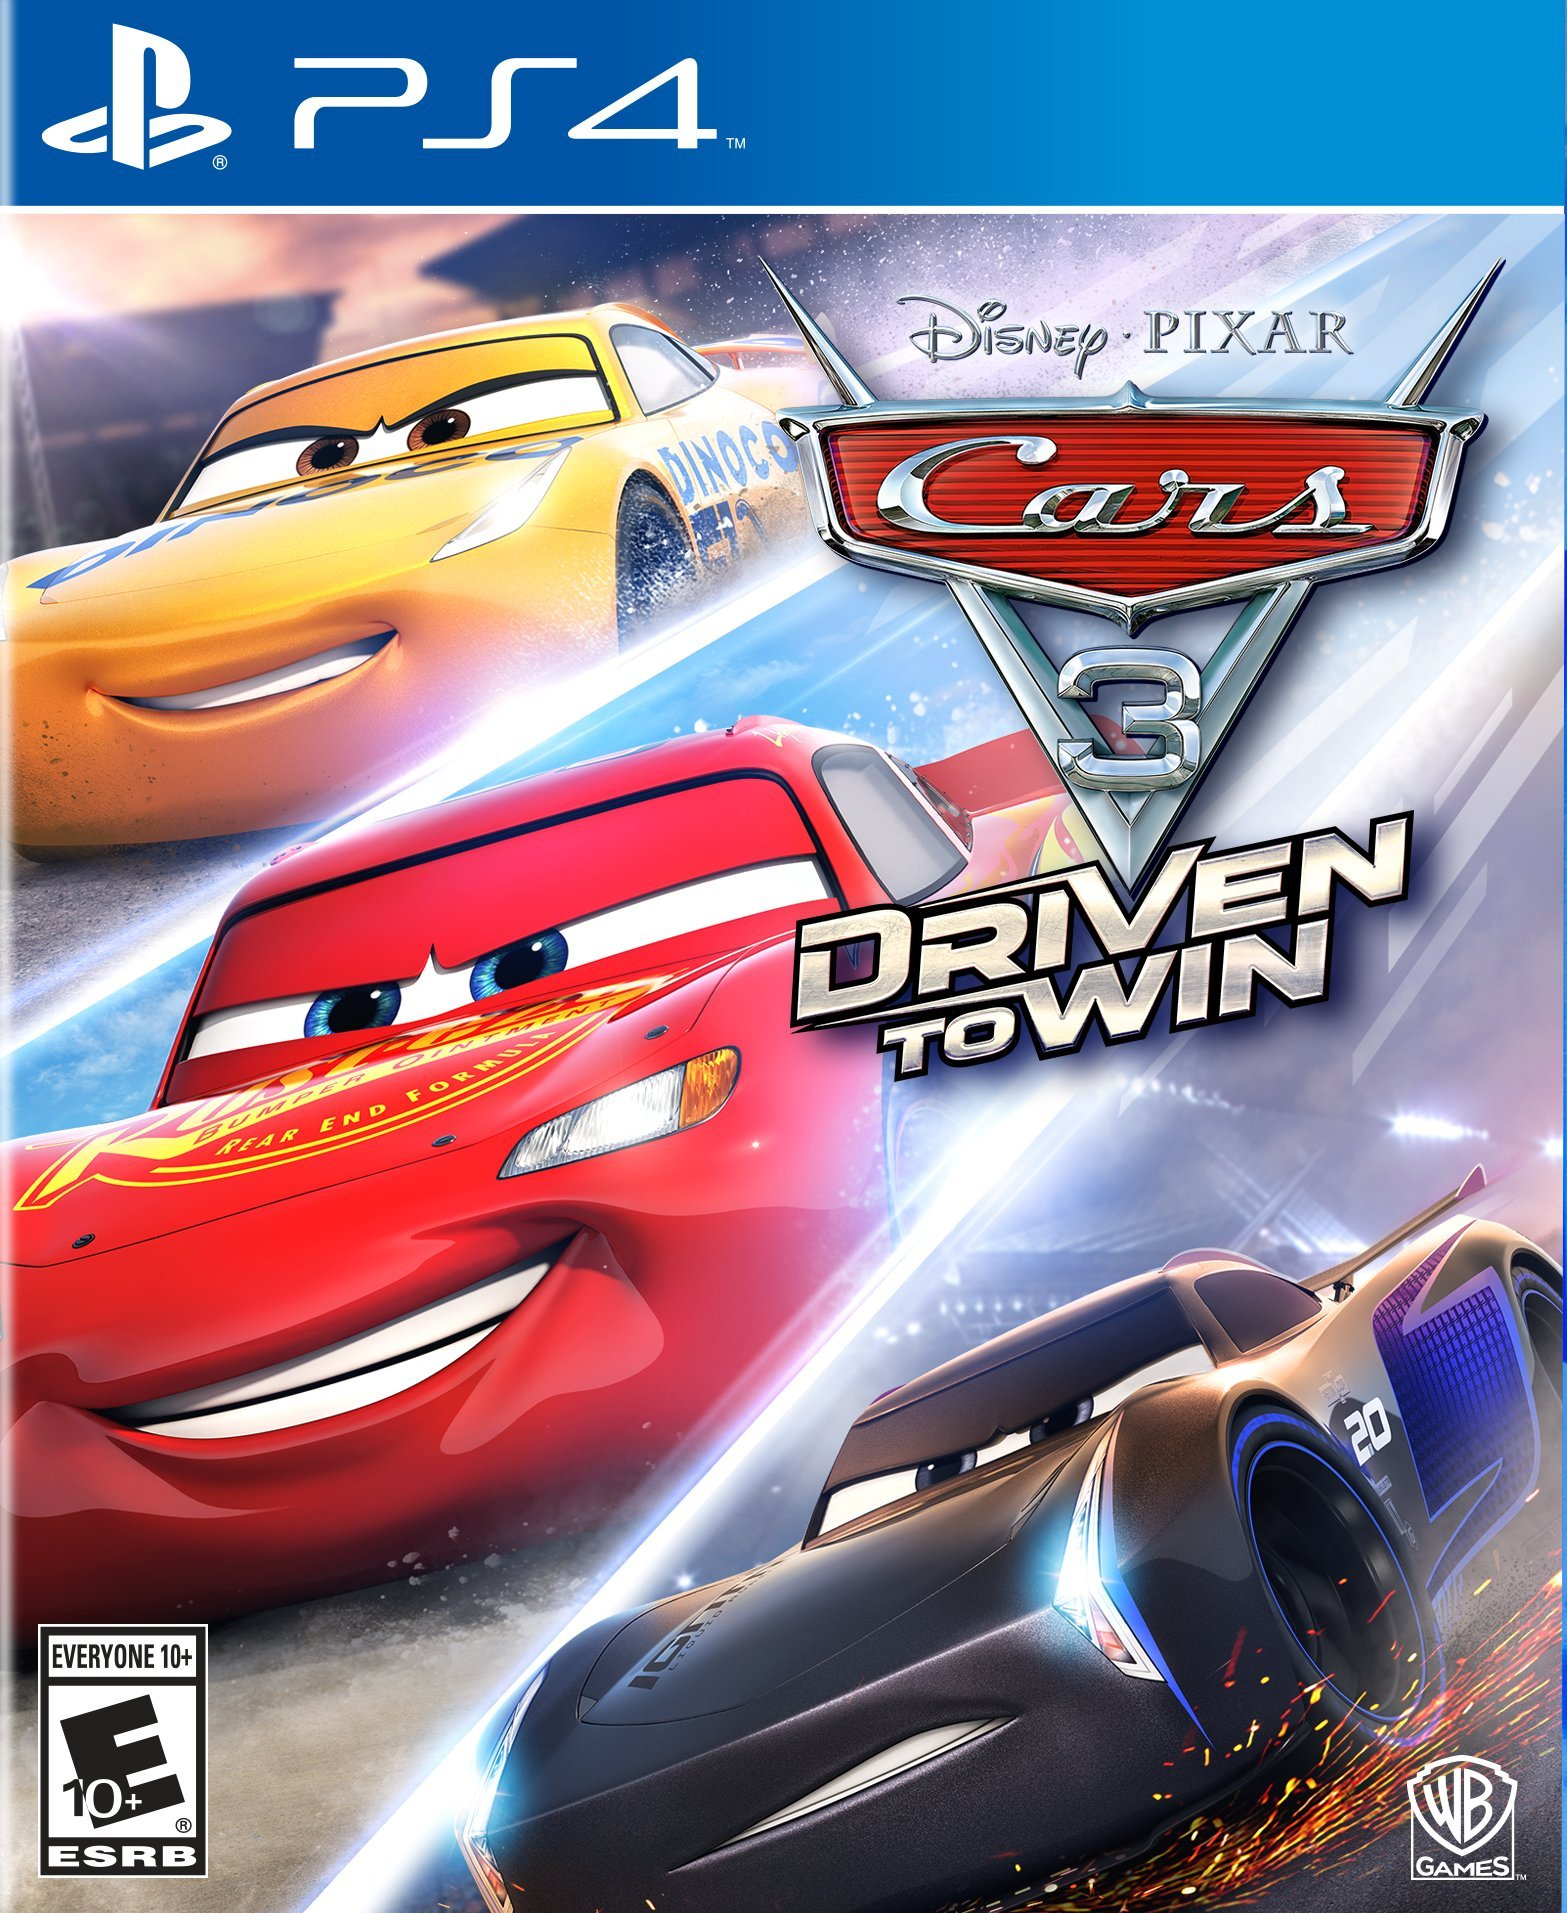 Disney Pixar Cars 3 Driven to Win - PlayStation 4 Játékok